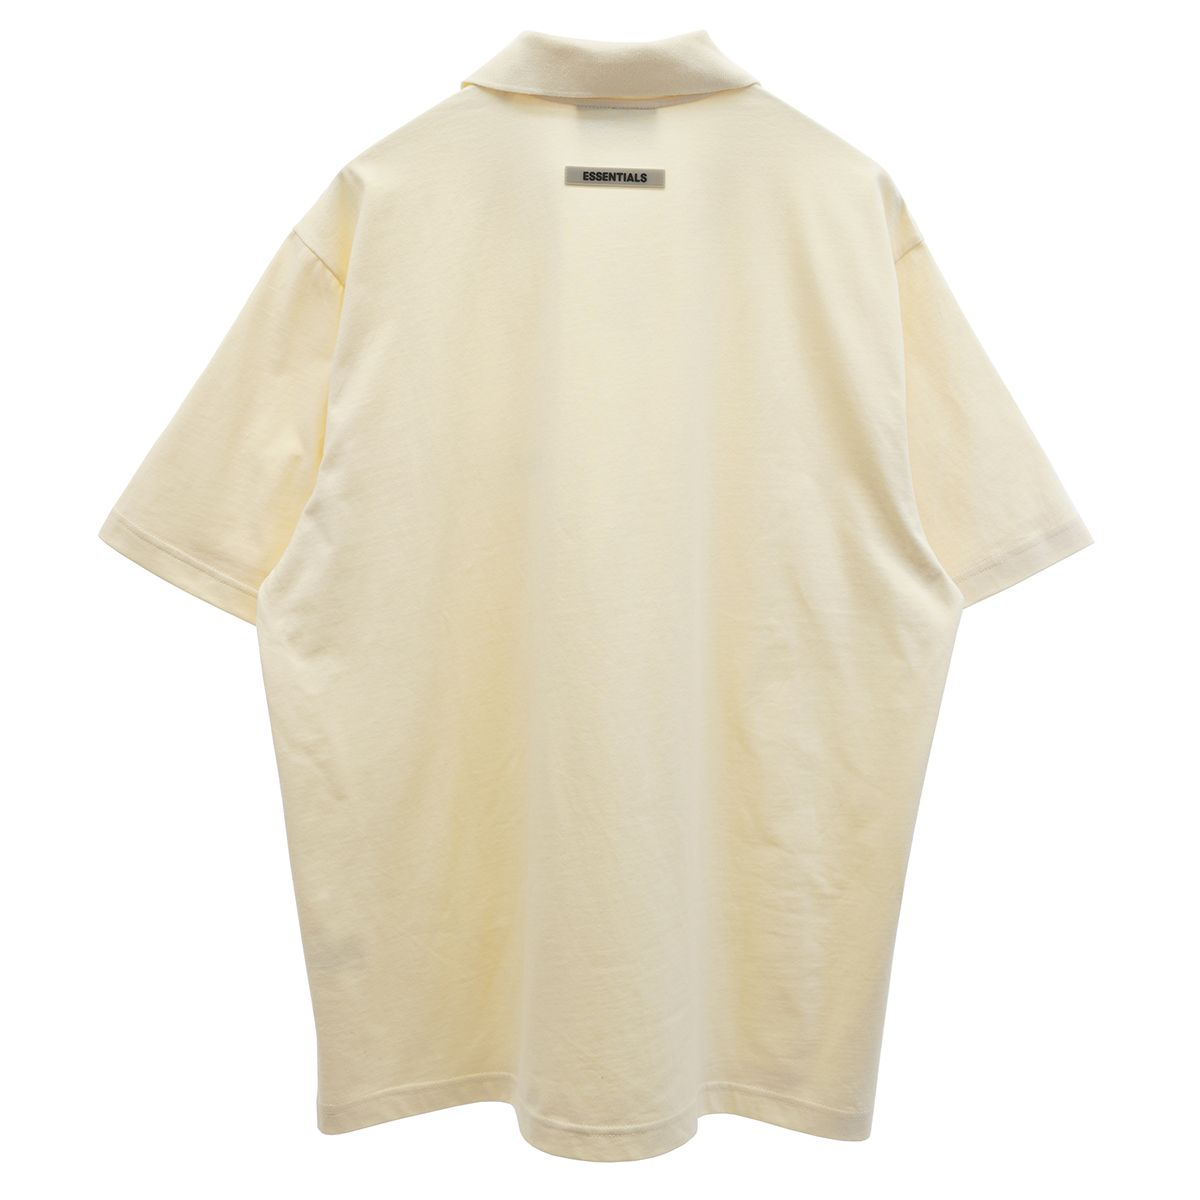 ESSENTIALS HO20 S/S POLO / 569 : CREAM